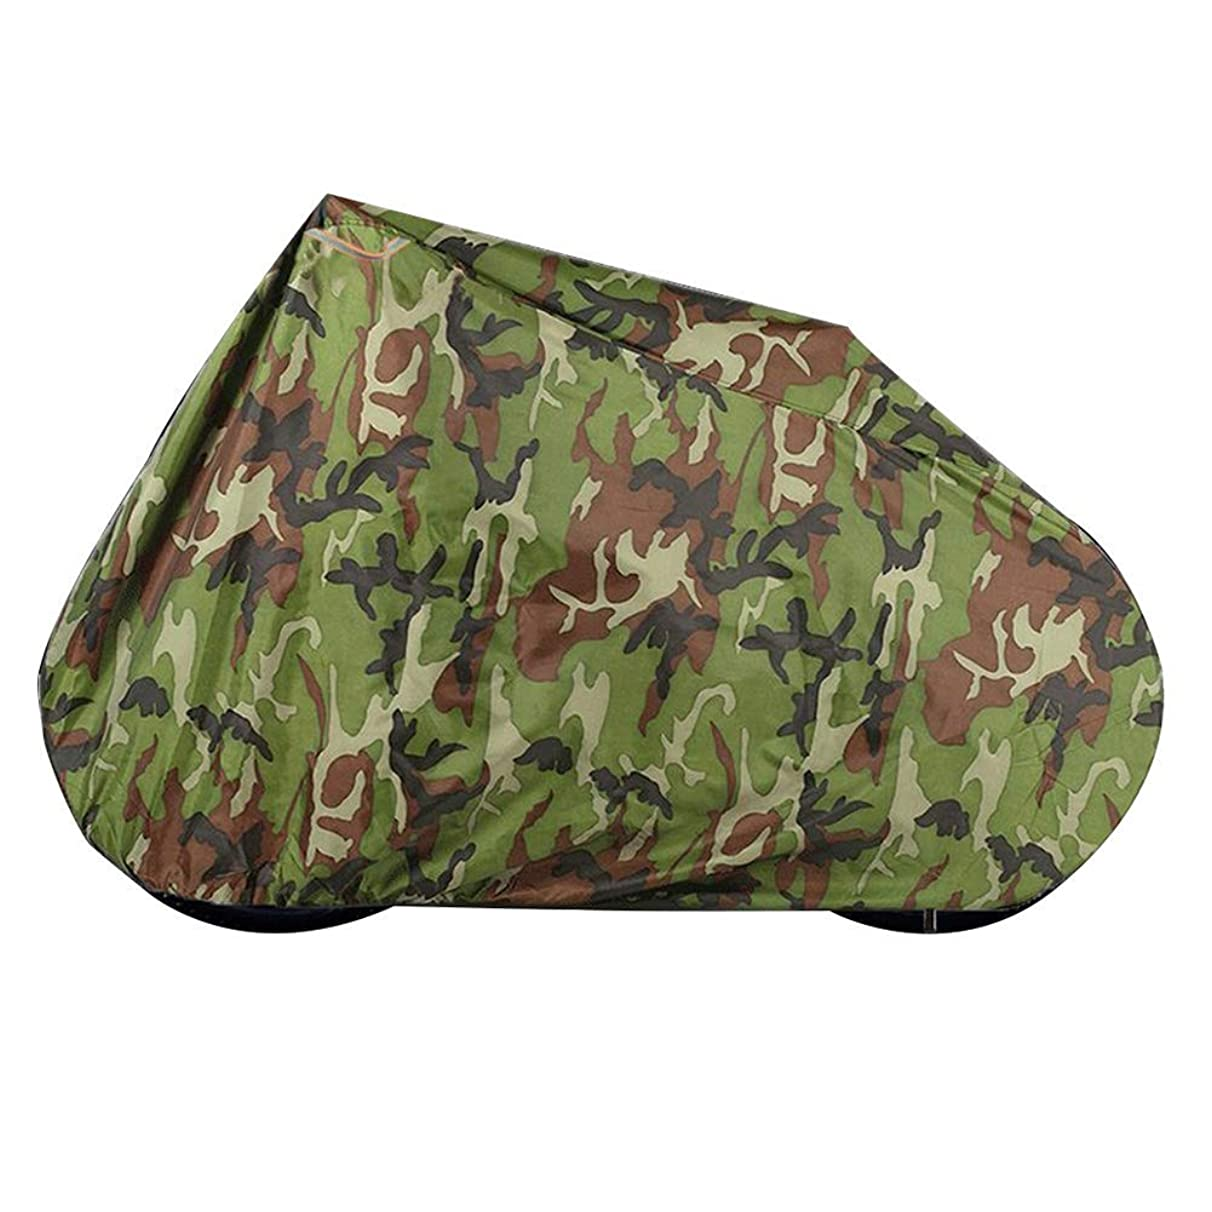 Waterproof Bike Cover Rainproof Cloth Portable Dust-Proof Sunscreen Anti-Oxidation, Multiple Sizes Available, WenMing Yue, Camouflage Color, XL